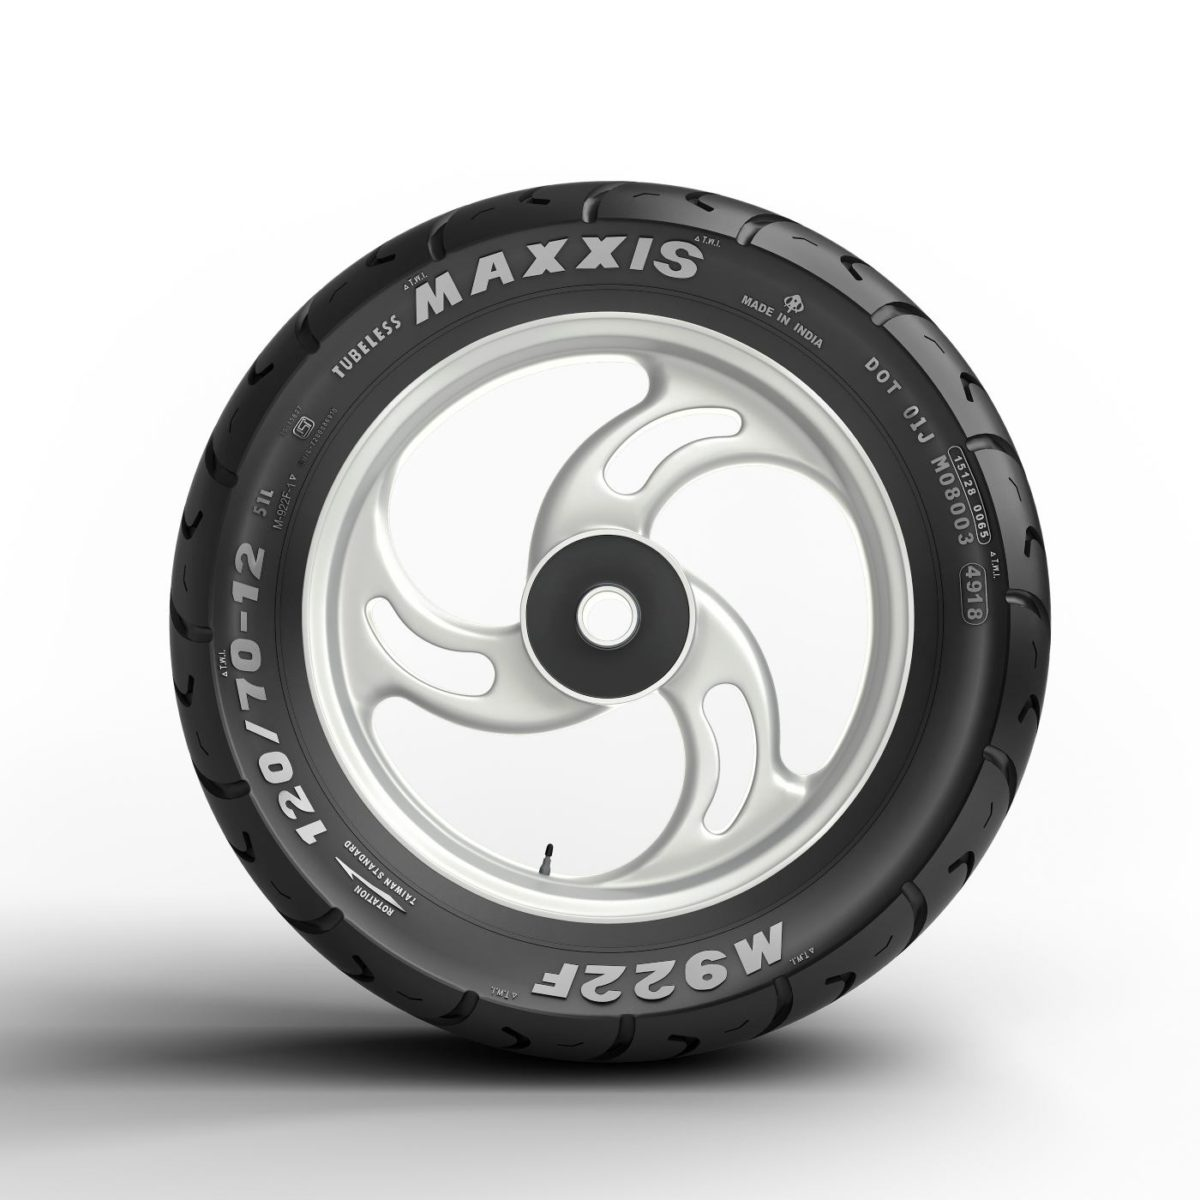 Maxxis electric scooter tyre (2)